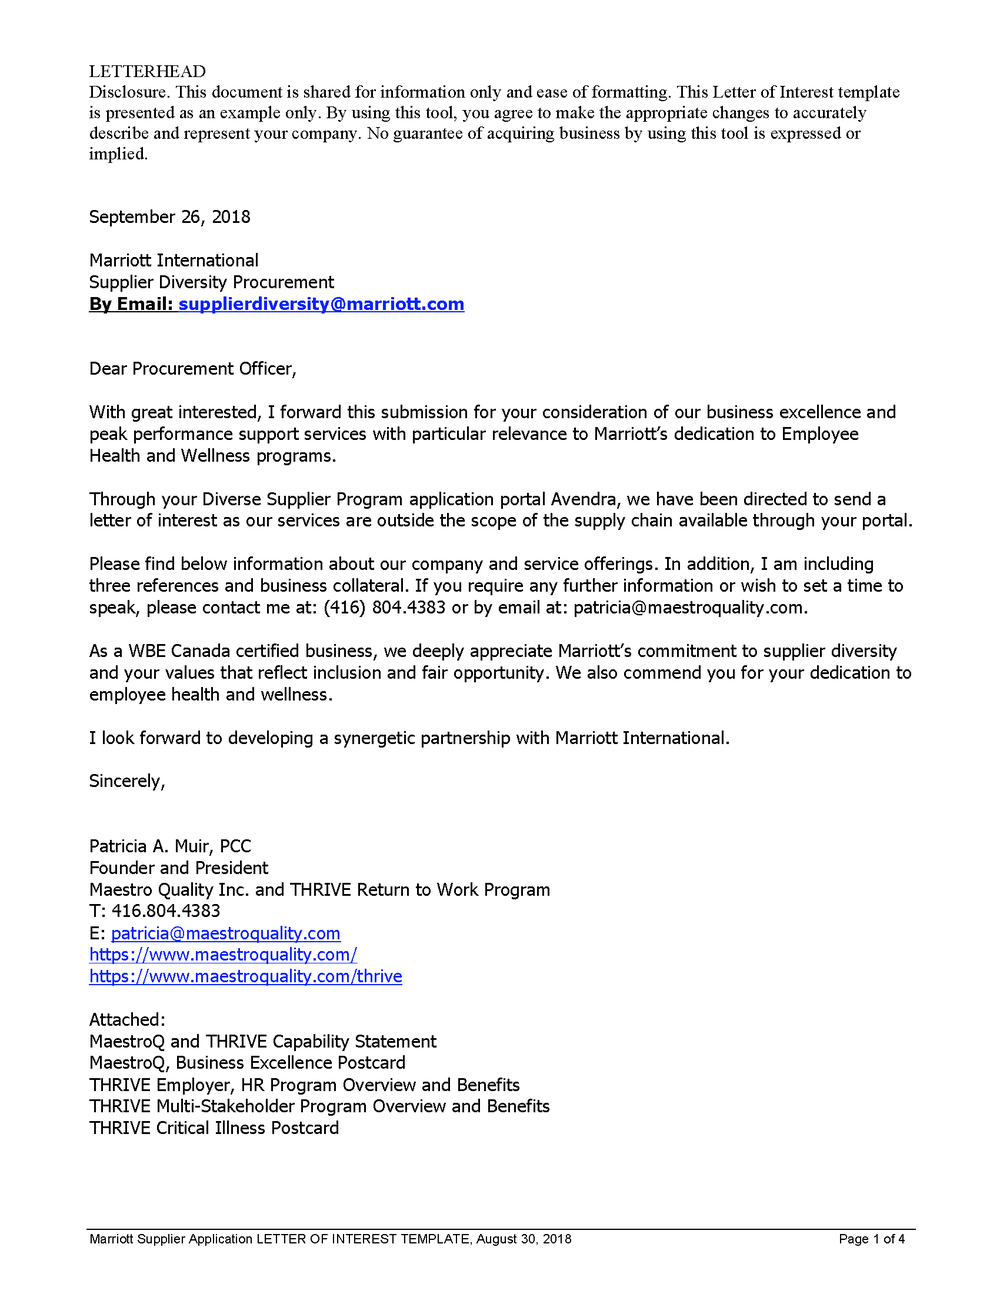 03 Letter of Interest Template used for Marriott Supplier Inquiry, 09262018_Page_1.png